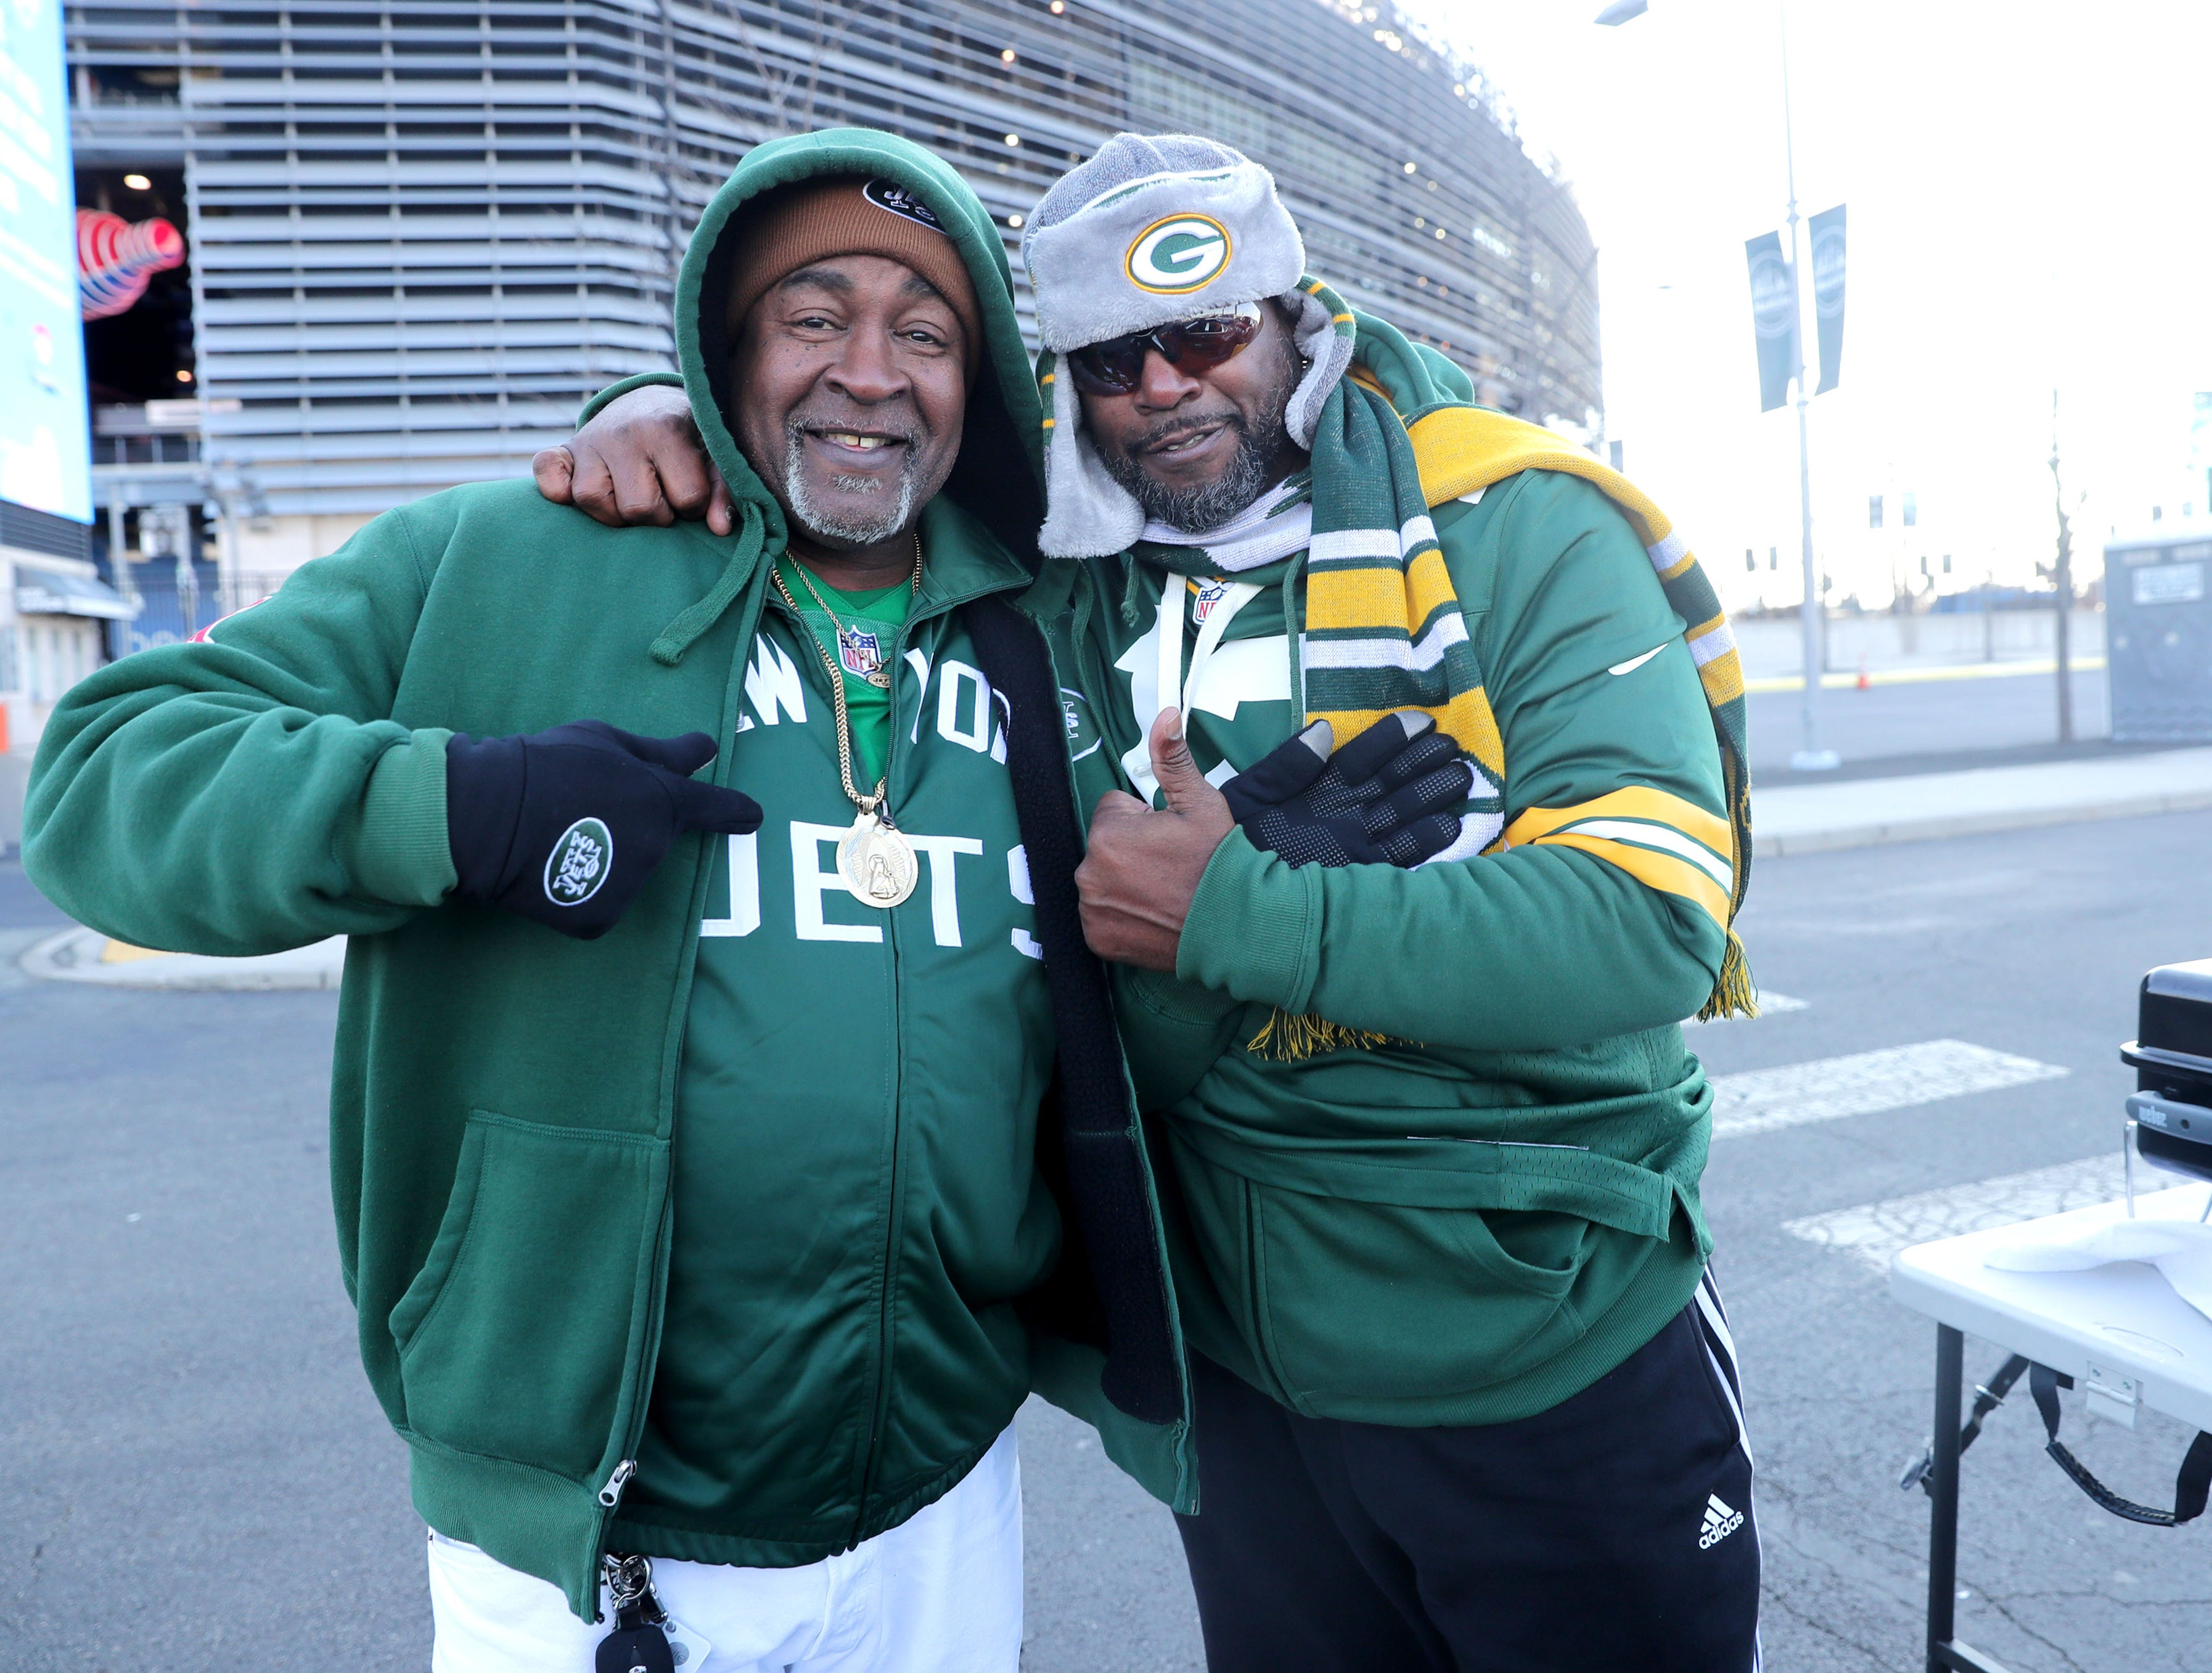 New York Jets  fan Ernest Powell, from Verplanck, New York and Green Bay Packers fan  Maurice Graham, from Poughkeepsie, New York don their Jets and Packers gear while tailgating before the Green Bay Packers game against the New York Jets at MetLife Stadium Sunday, Dec. 23, 2018, in East Rutherford.